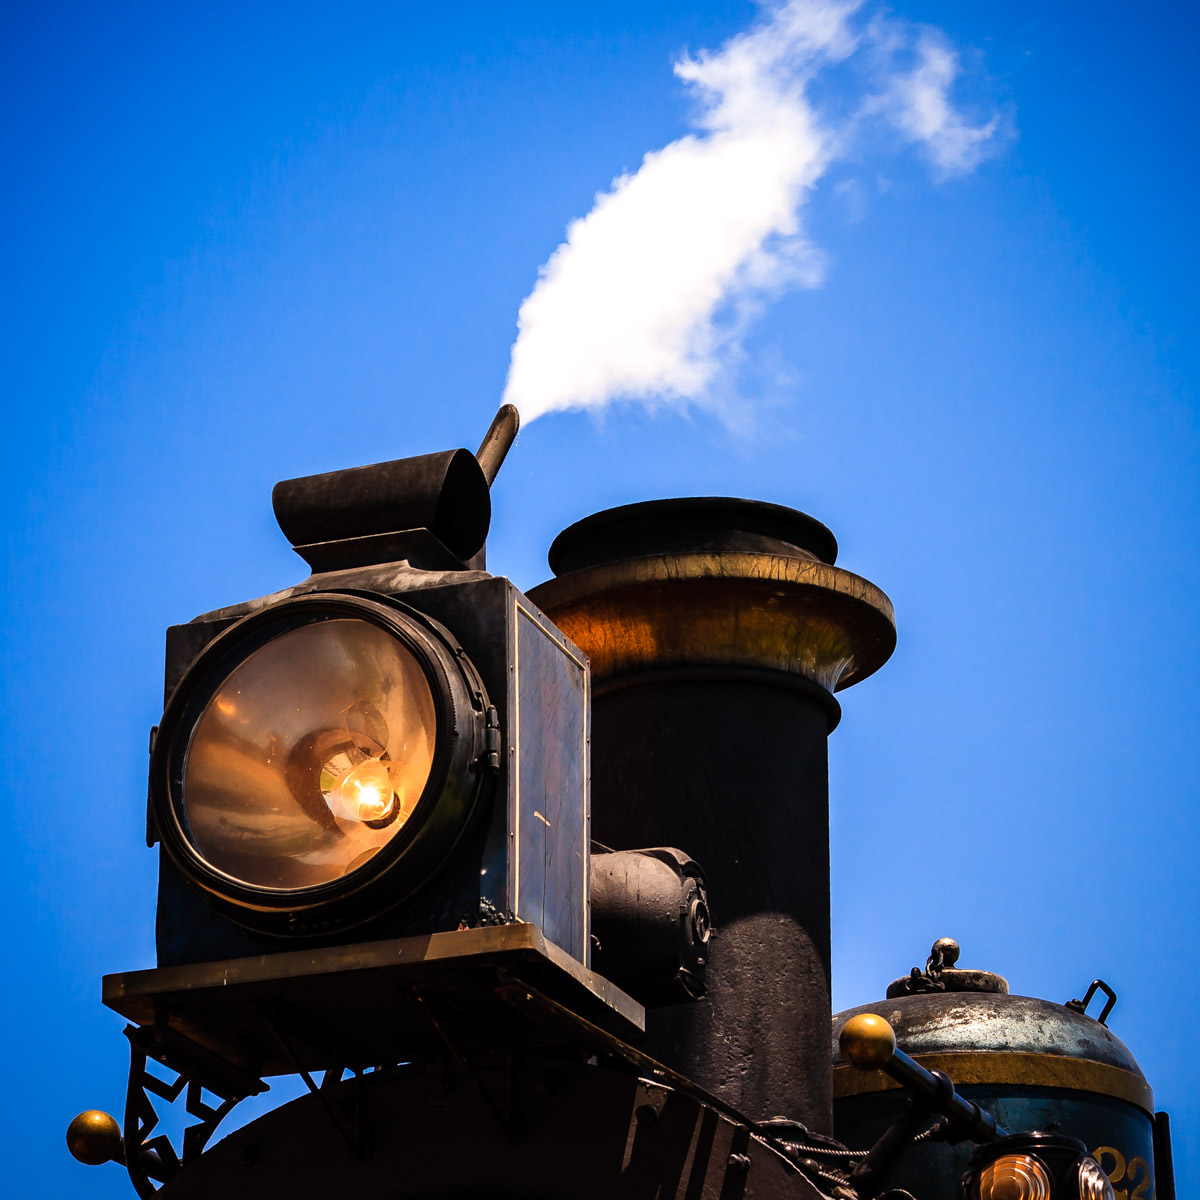 Detail of an 1896 steam locomotive belonging to the Grapevine Vintage Railroad, Grapevine, Texas.